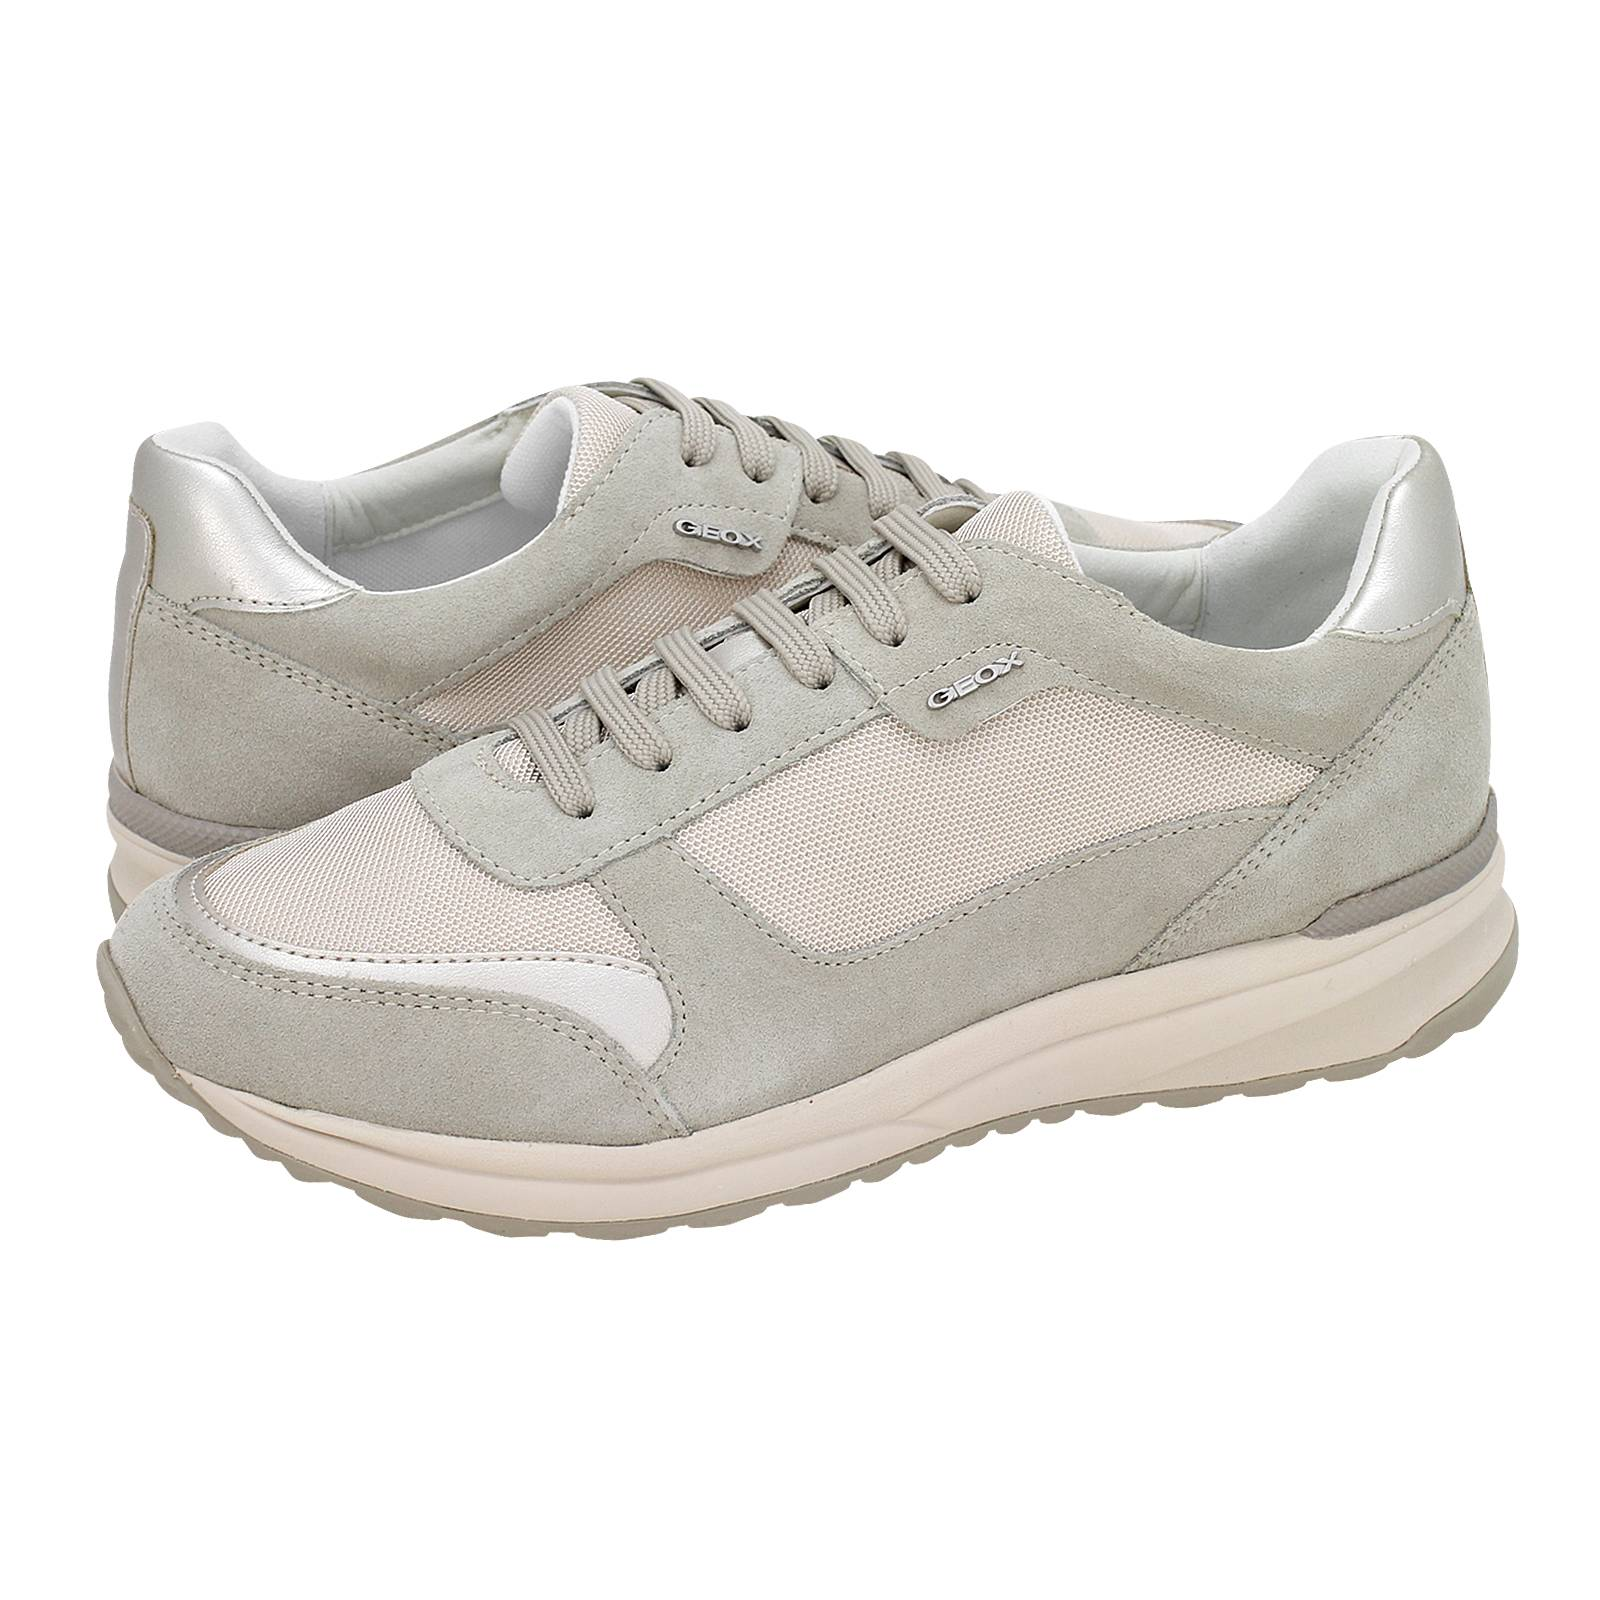 Geox D Airell C casual shoes